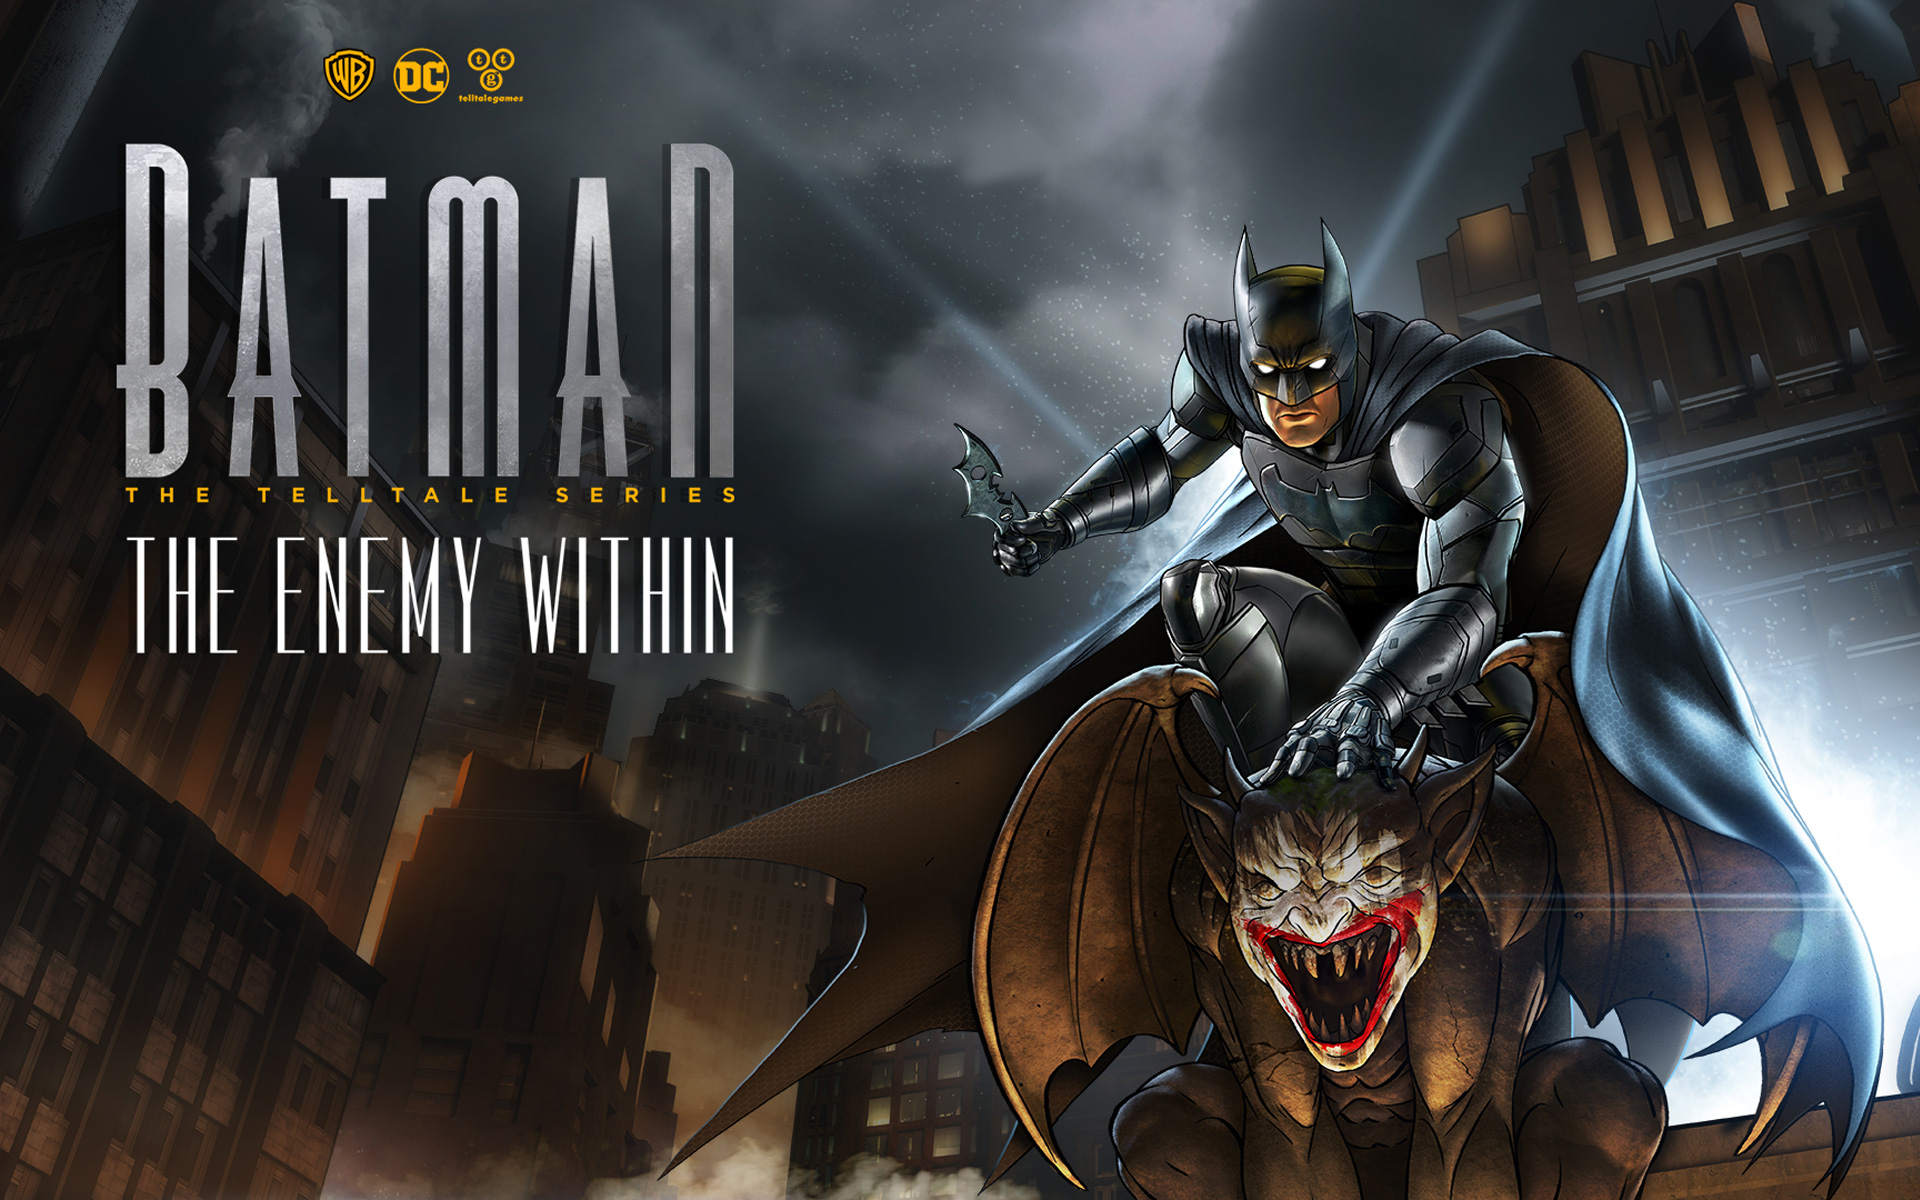 Batman: The Enemy Within - The Telltale Series Wallpaper in 1920x1200